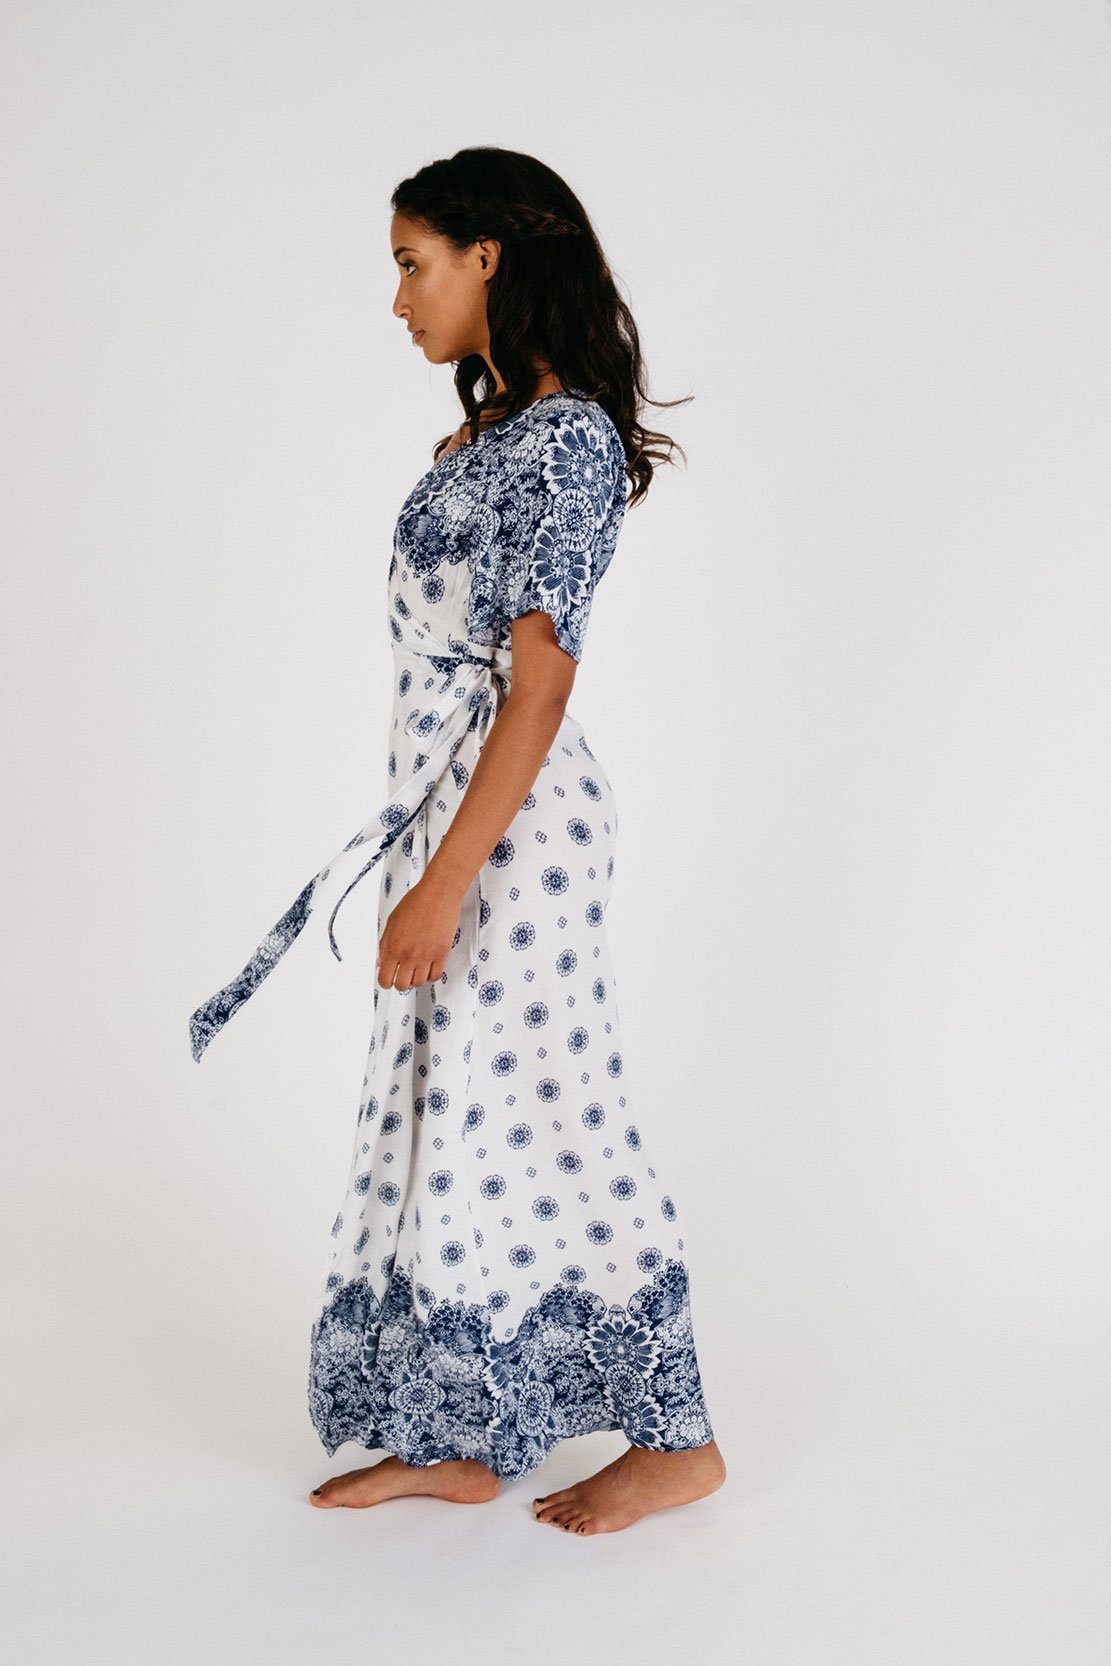 AMY ROSE Wrap Dress - bahia blue boutique - Dress